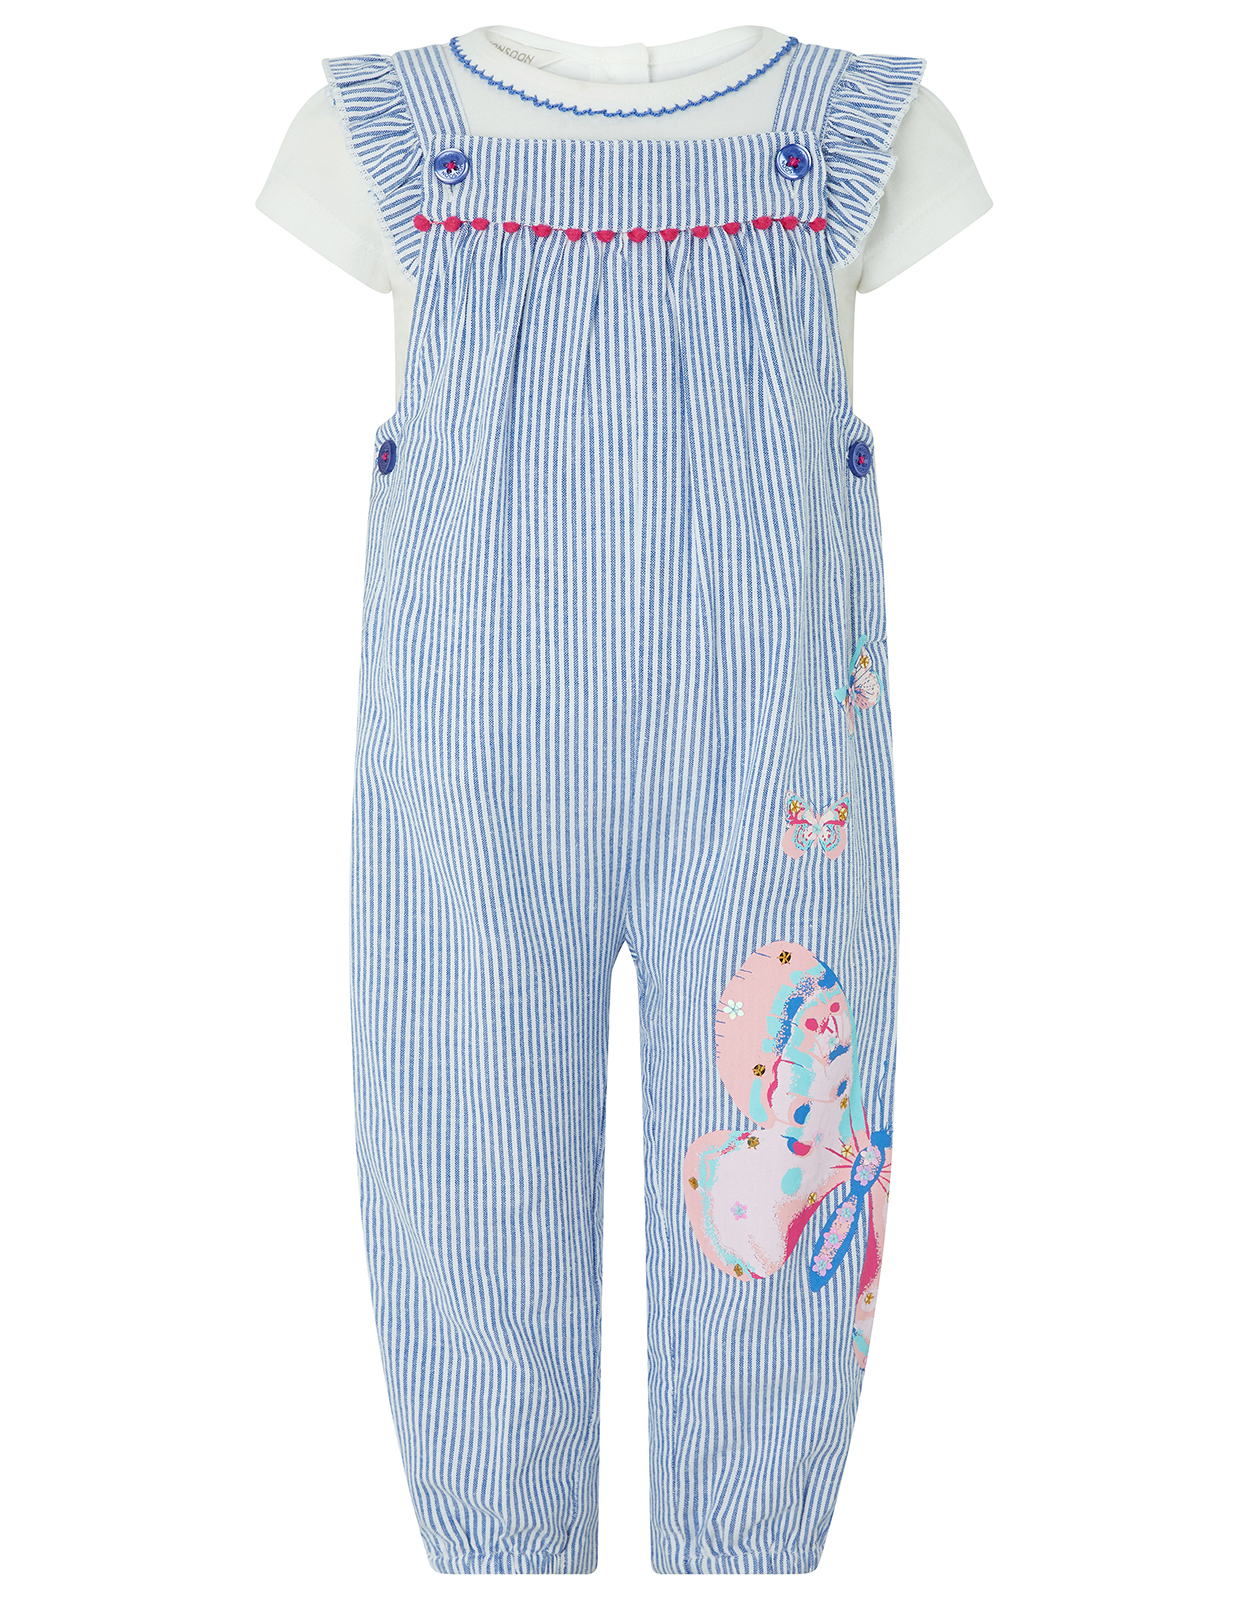 Monsoon Baby Delilah Dungarees Set